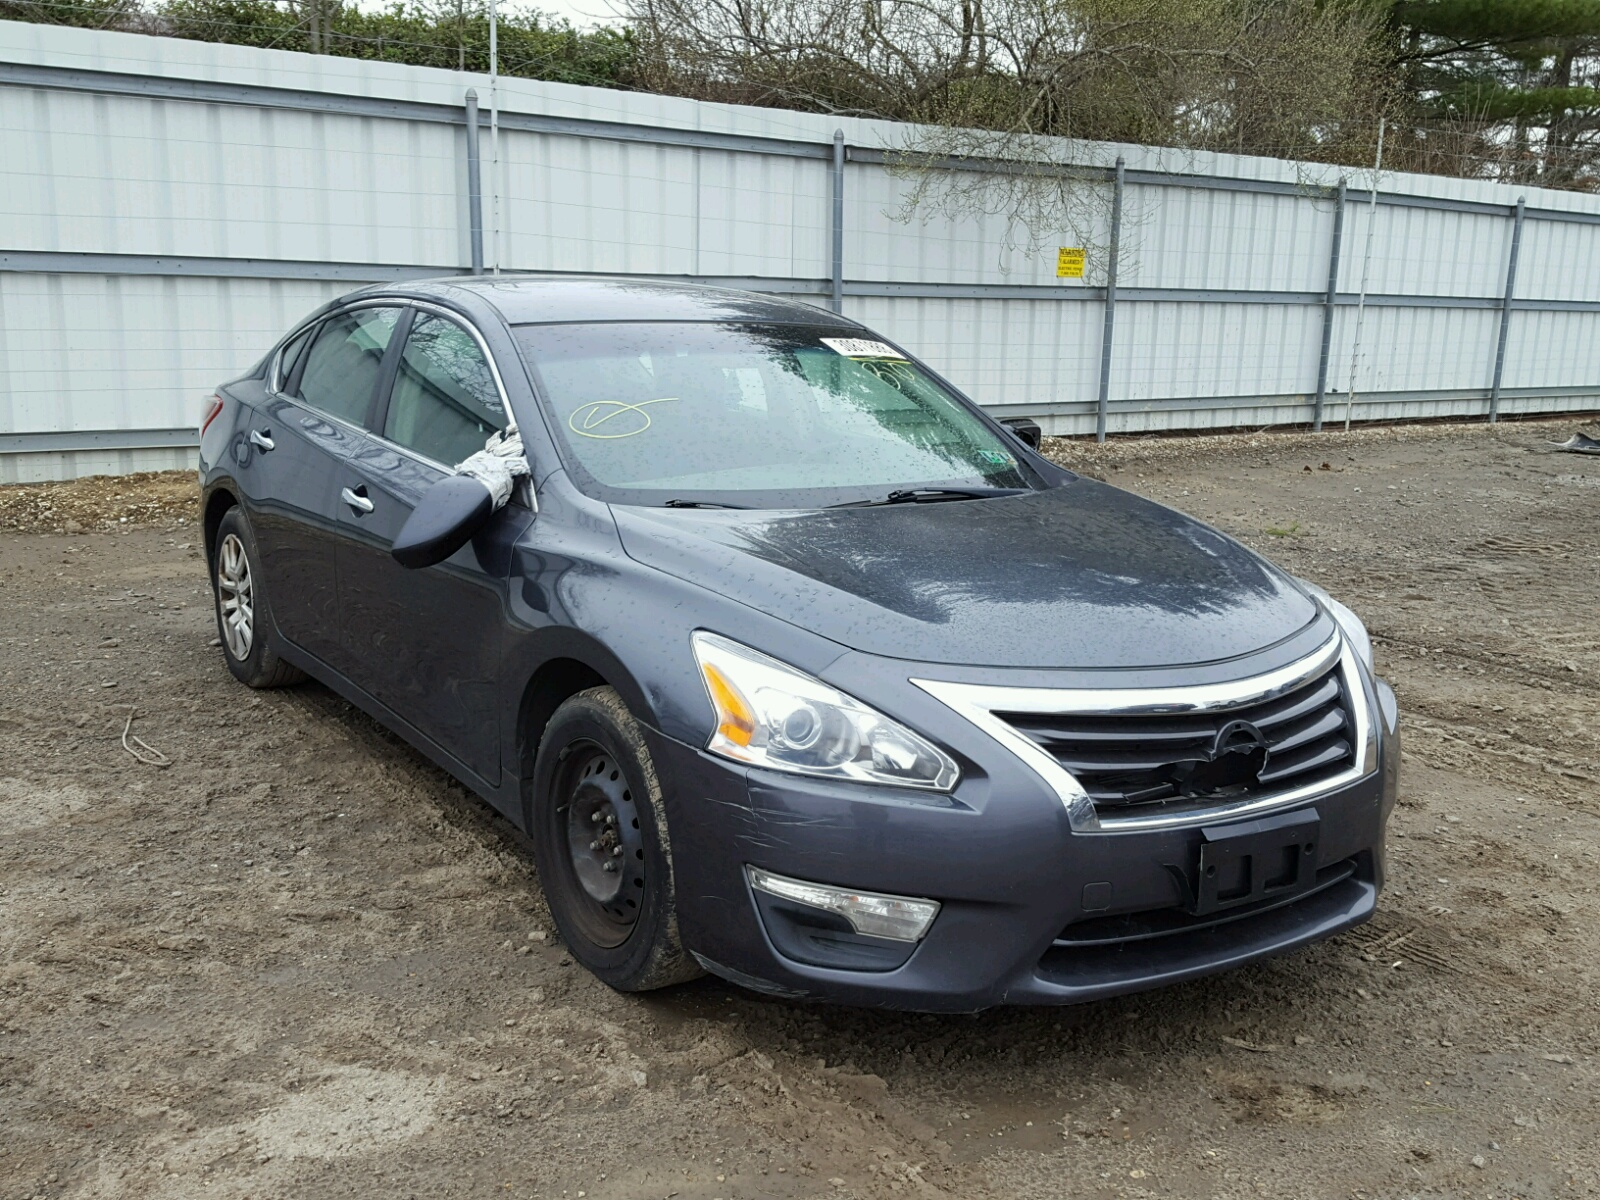 certificate online carfinder salvage sikeston altima nissan auctions sale title of on en white mo for auto lot in copart view left